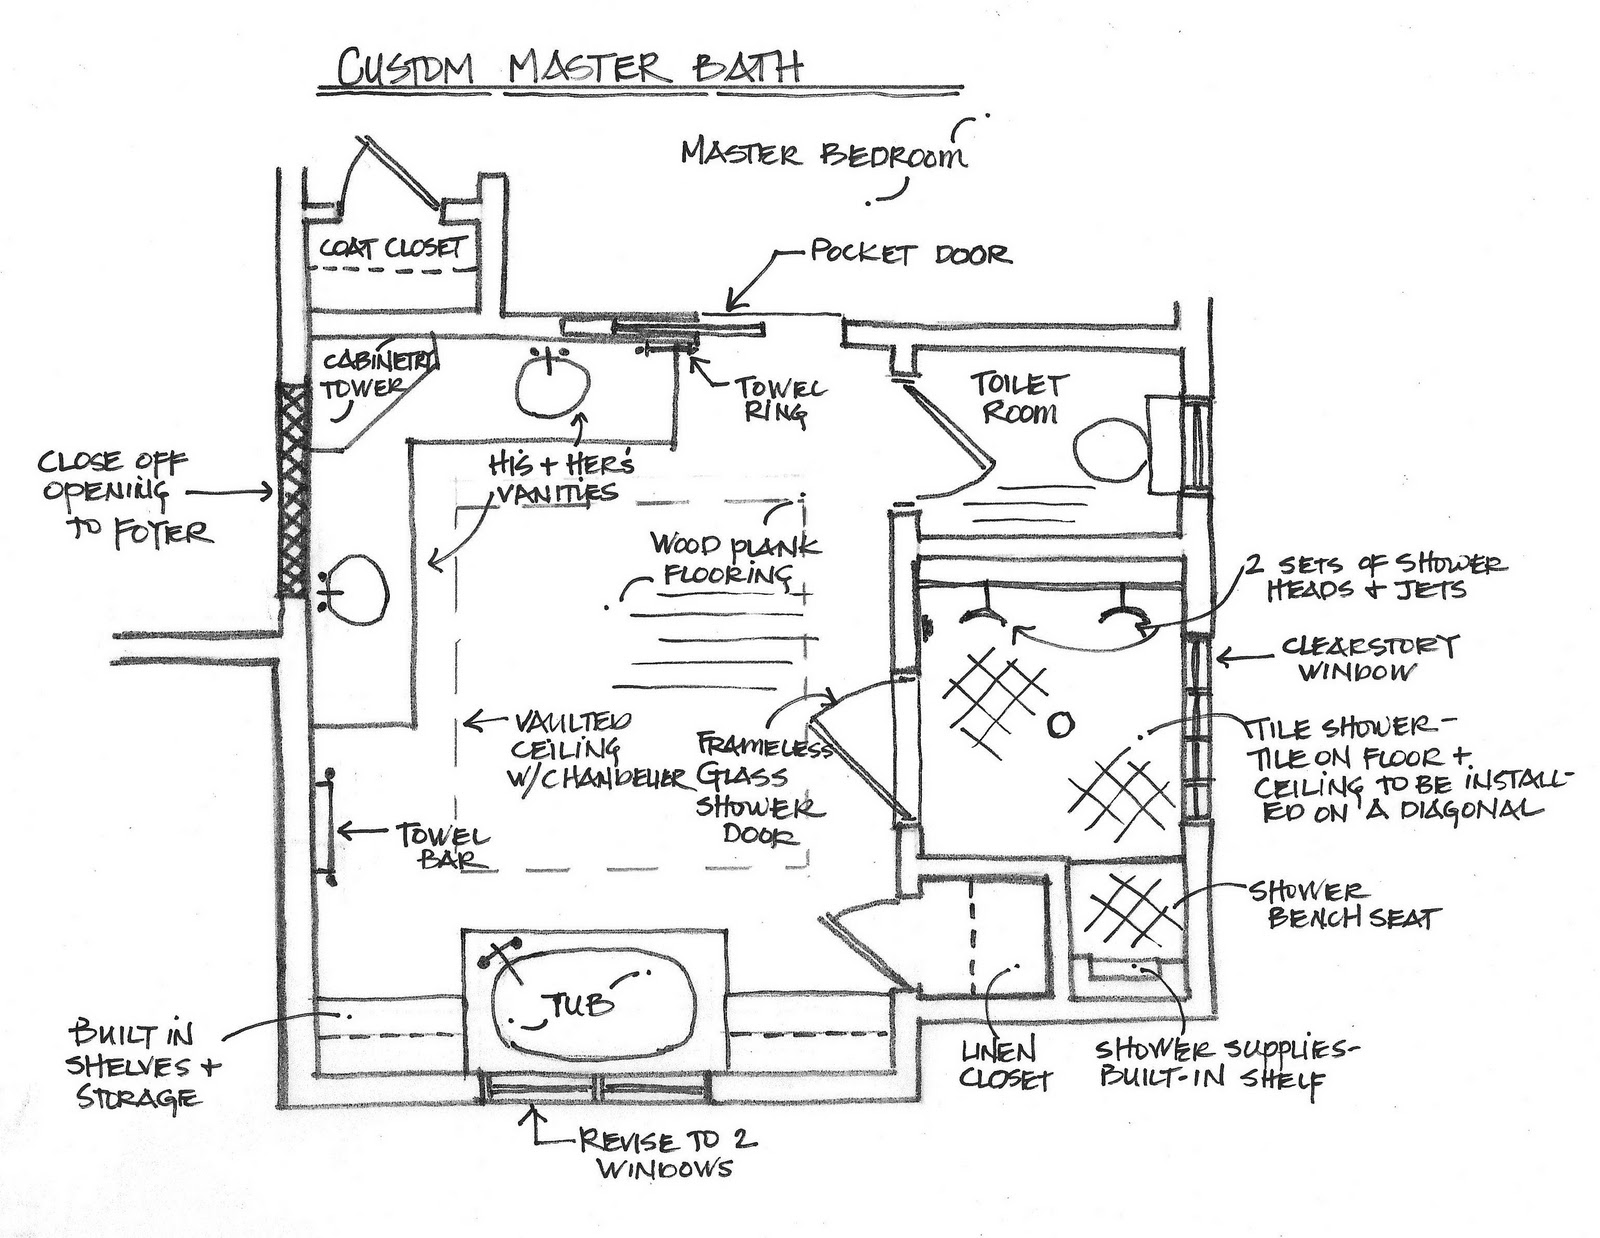 Master Bathroom Layouts For Small Spaces Home Decorating Ideasbathroom Interior Design